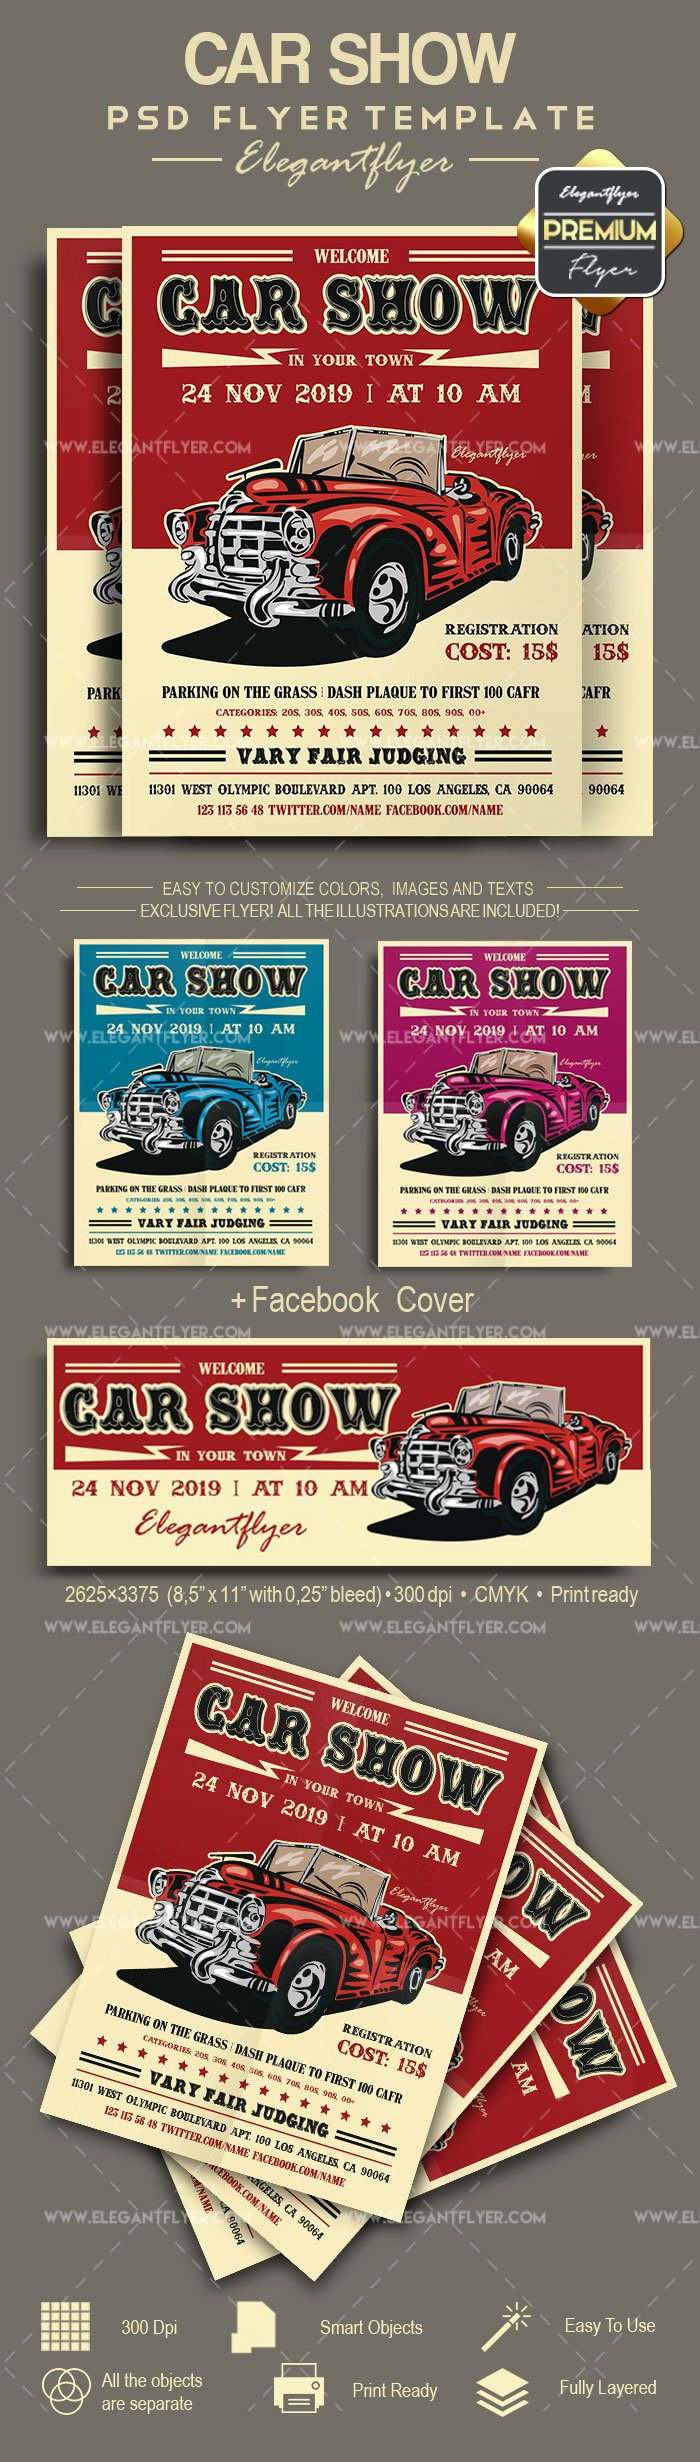 Car Show Flyer Template Elegant Classic Car Show Flyer Template – by Elegantflyer